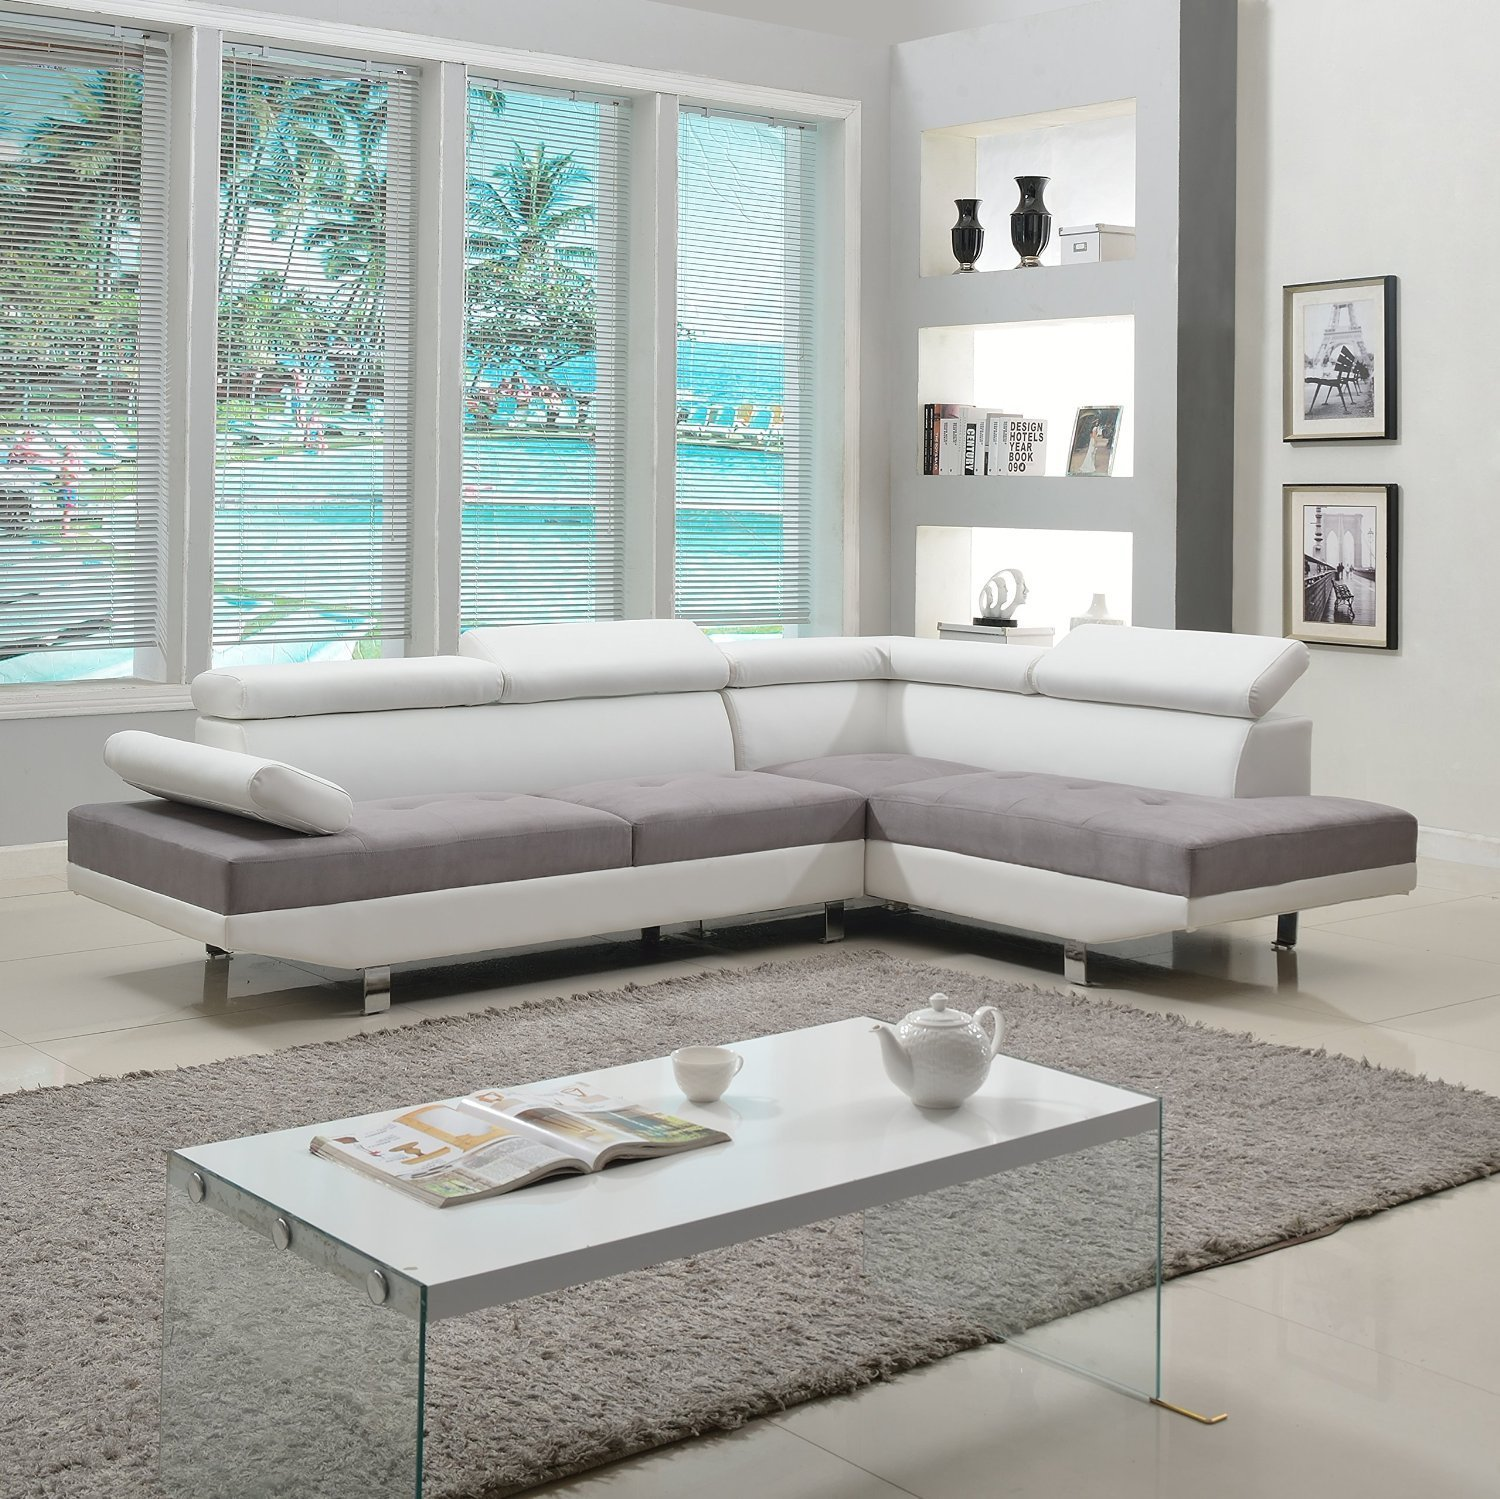 white microfiber sectional sofa how to determine much fabric you need reupholster a modern living room furniture review  find the best one